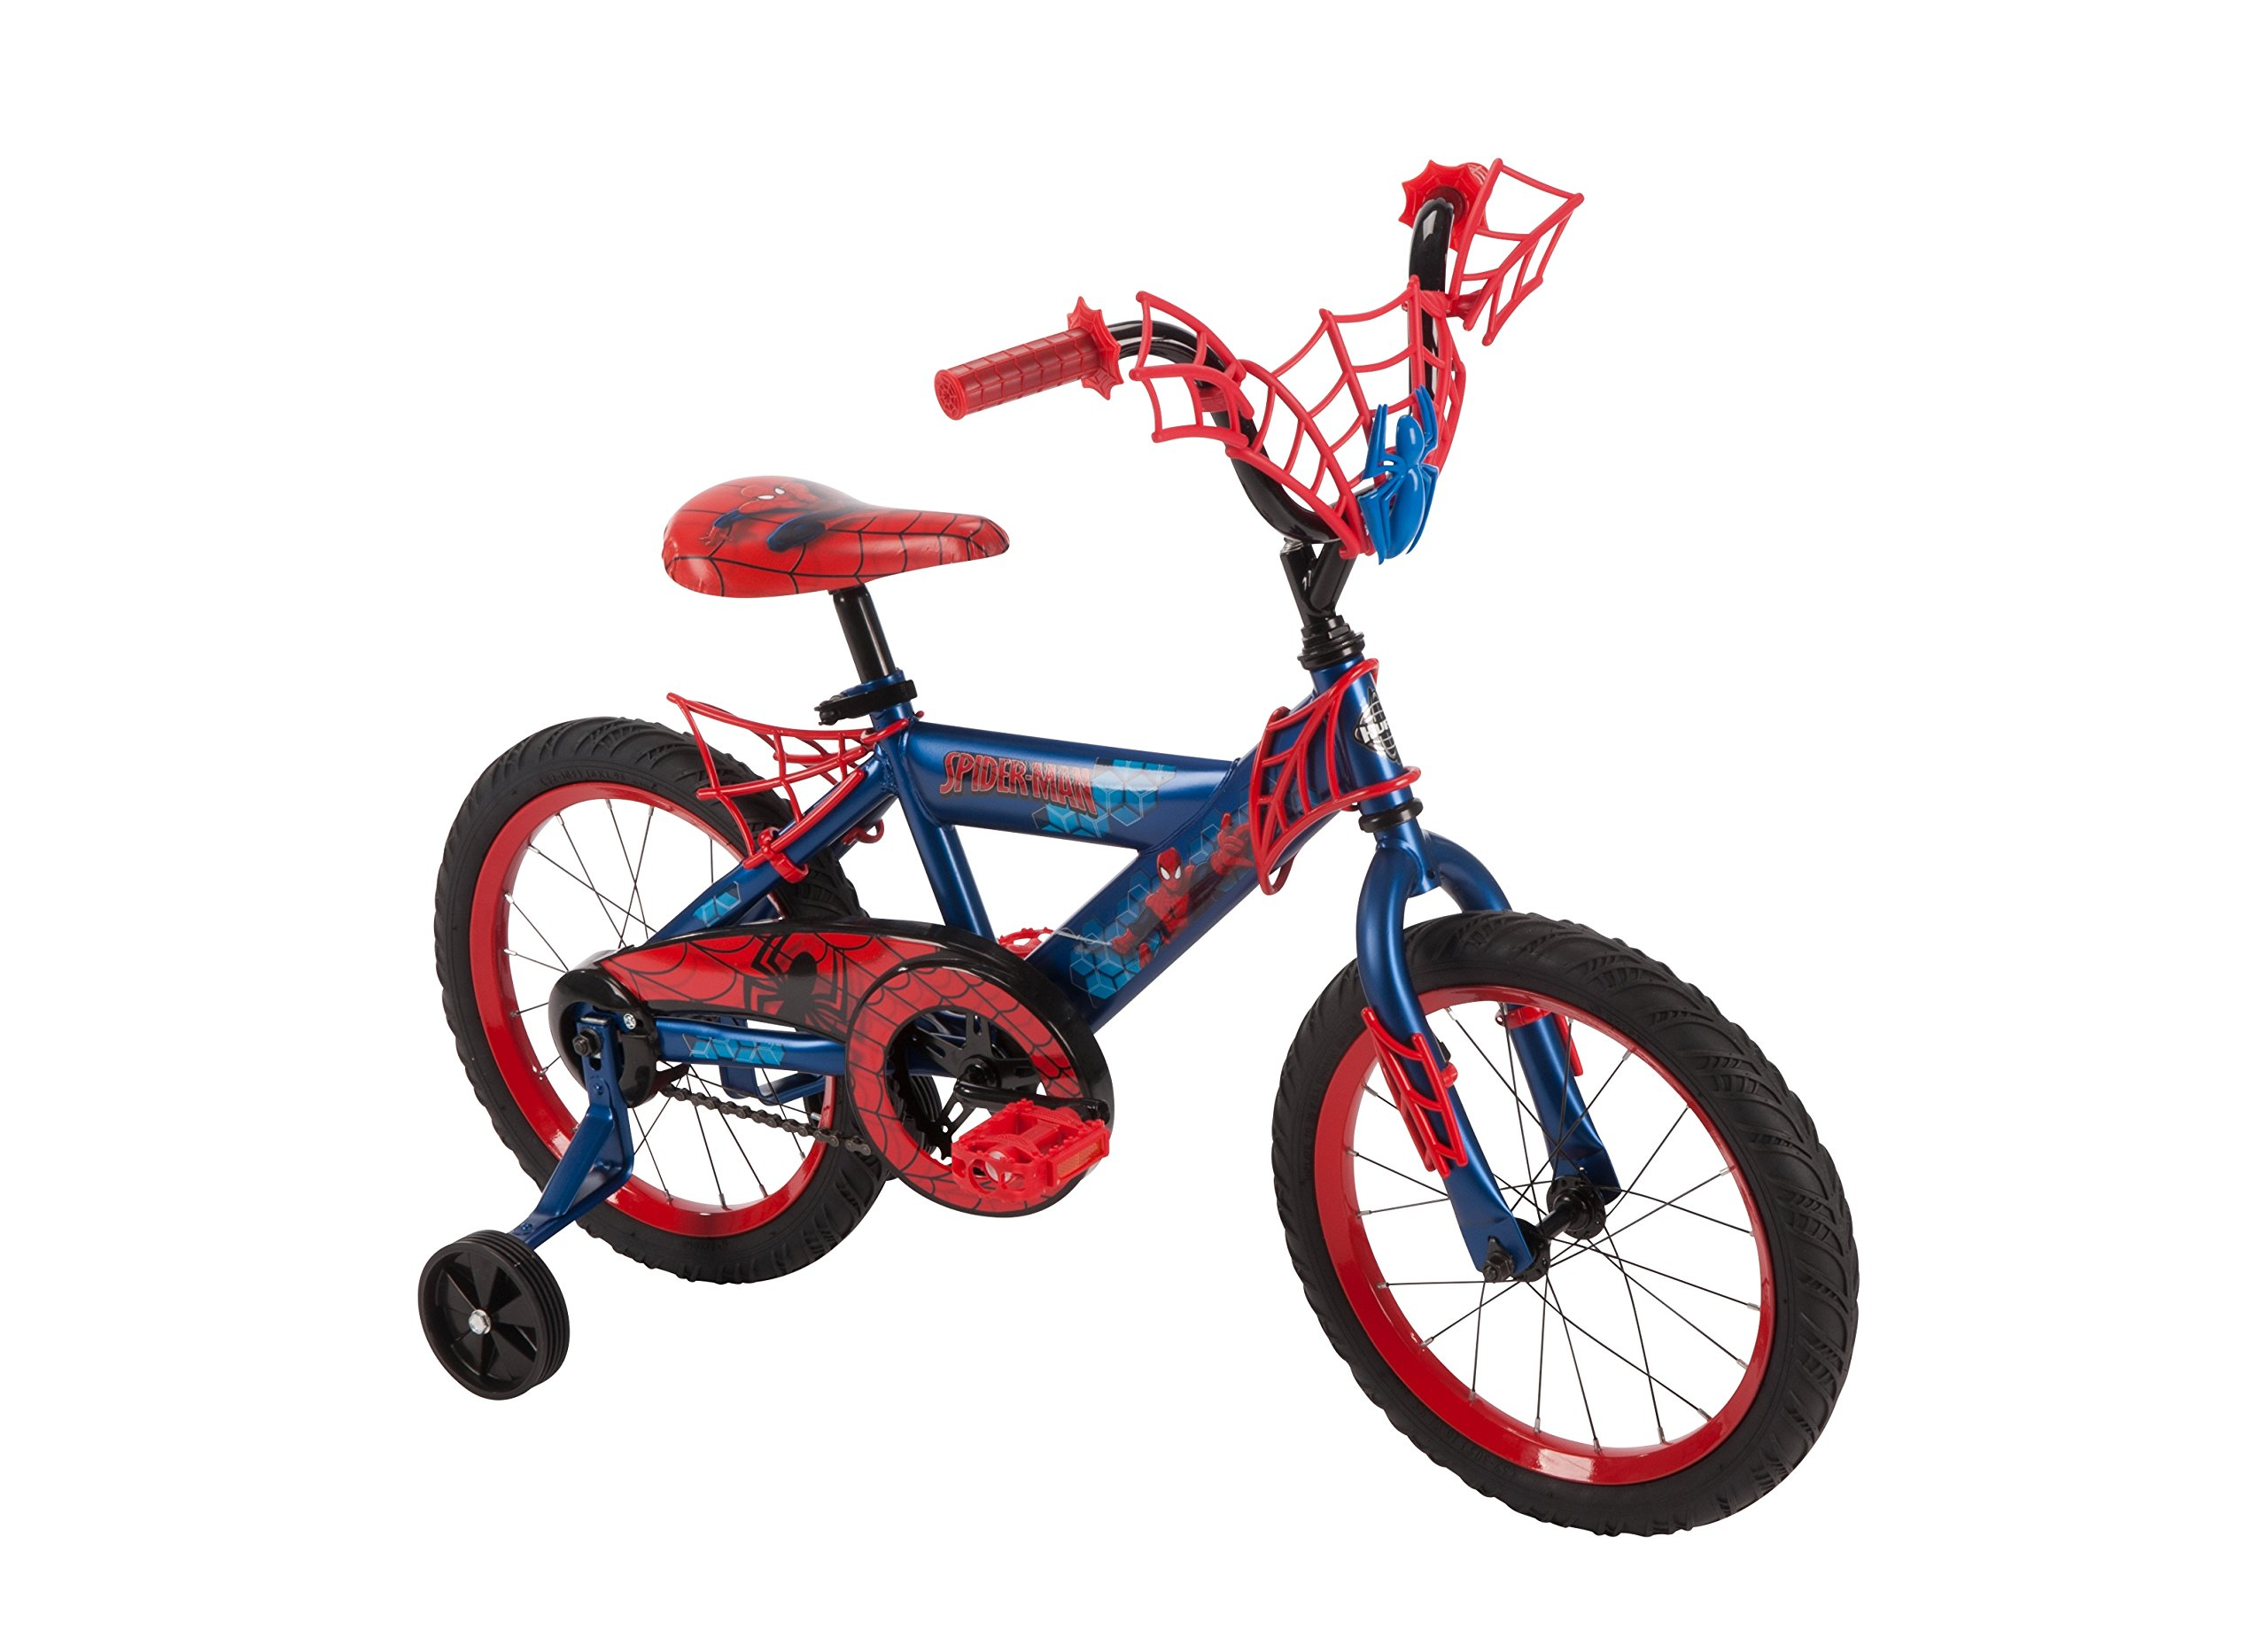 16'' Marvel Spider-Man Bike by Huffy, Ages 4-6, Height 42-48'' by Huffy (Image #1)